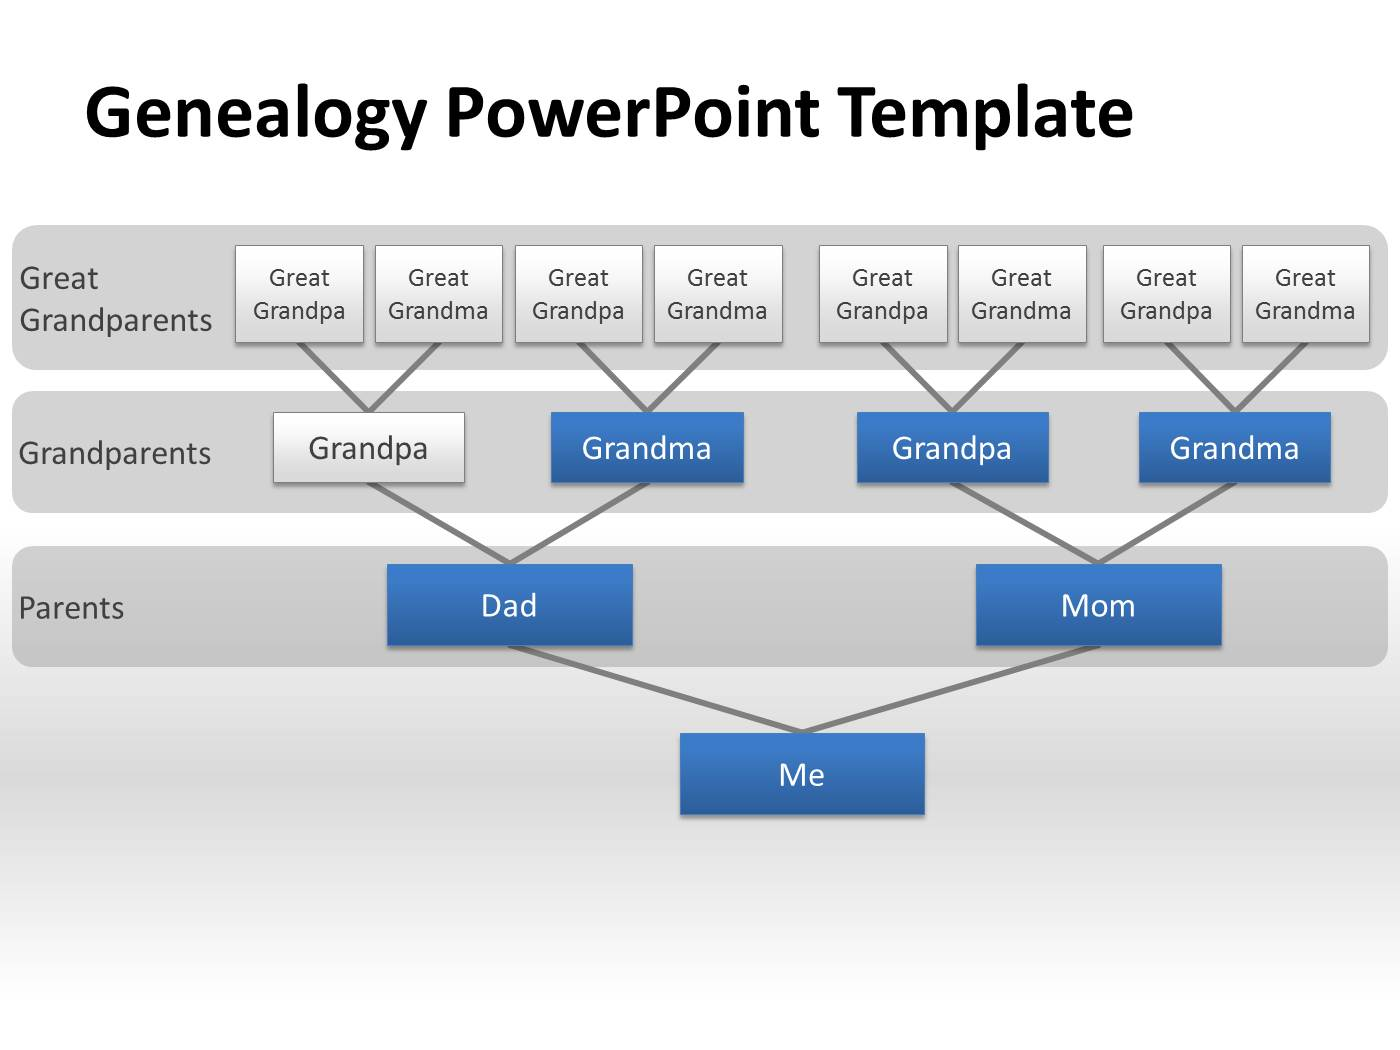 Genealogy powerpoint templatepptx powerpoint presentation ppt embed alramifo Choice Image